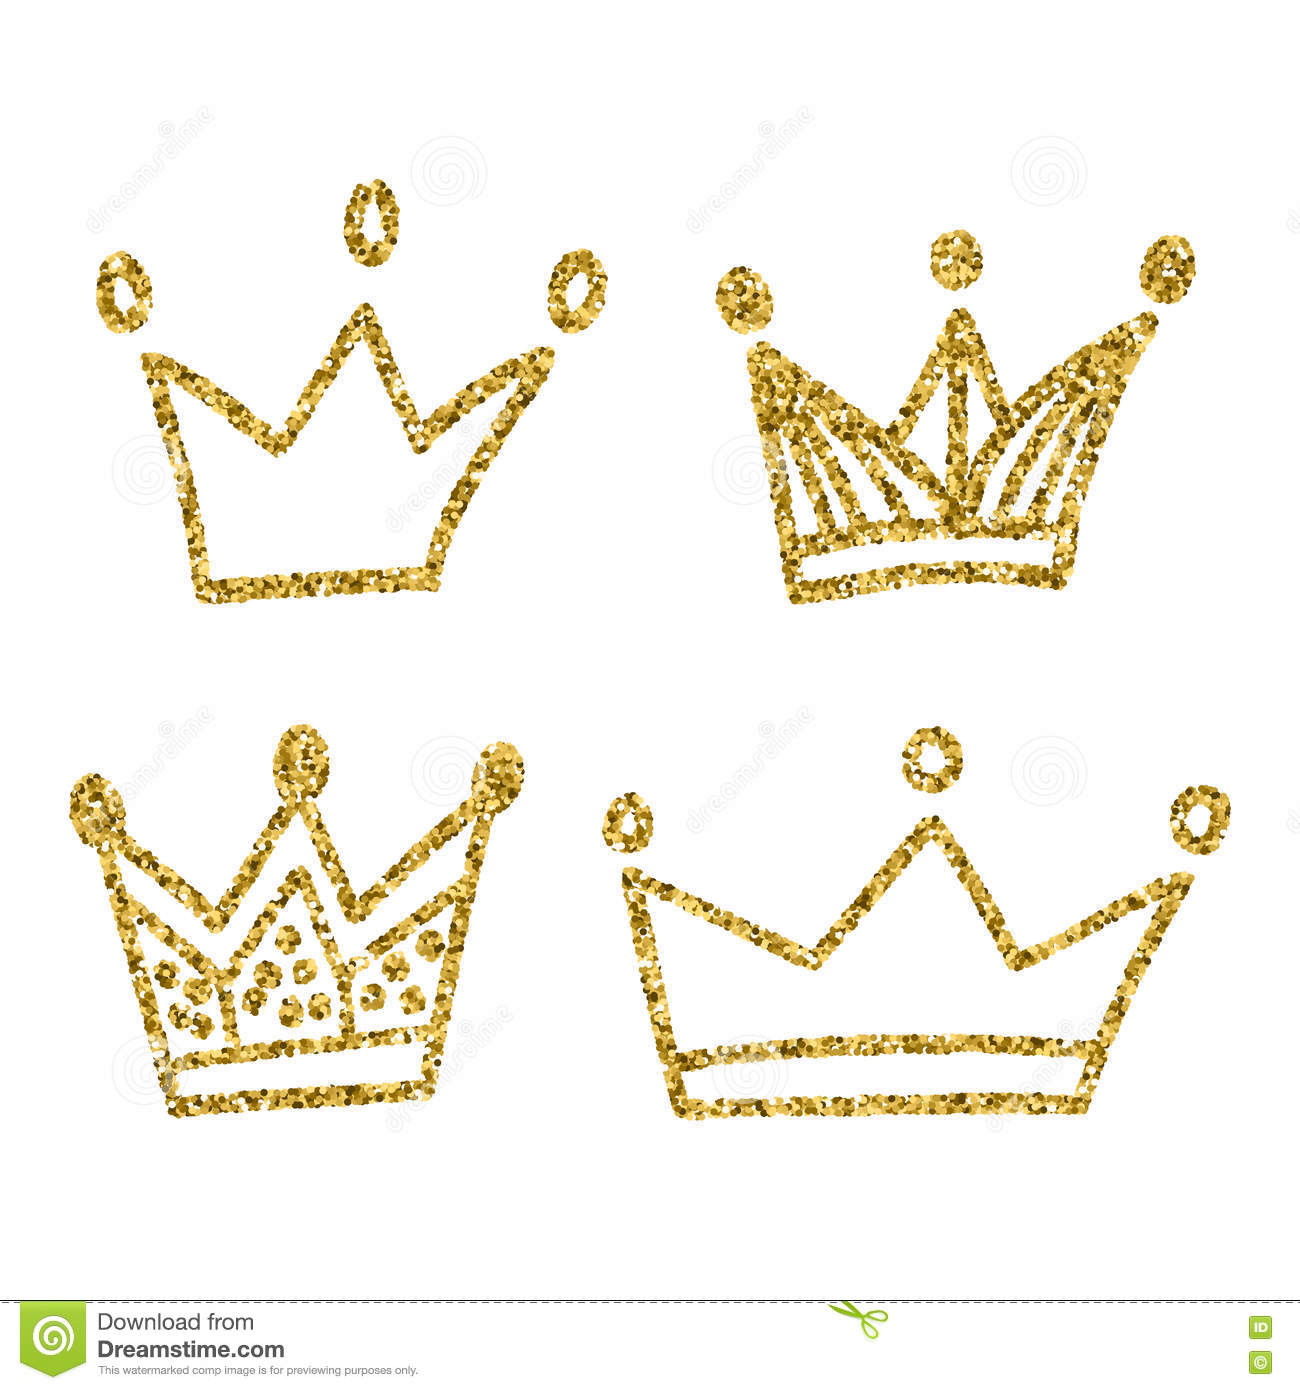 Gold crown background - photo#35